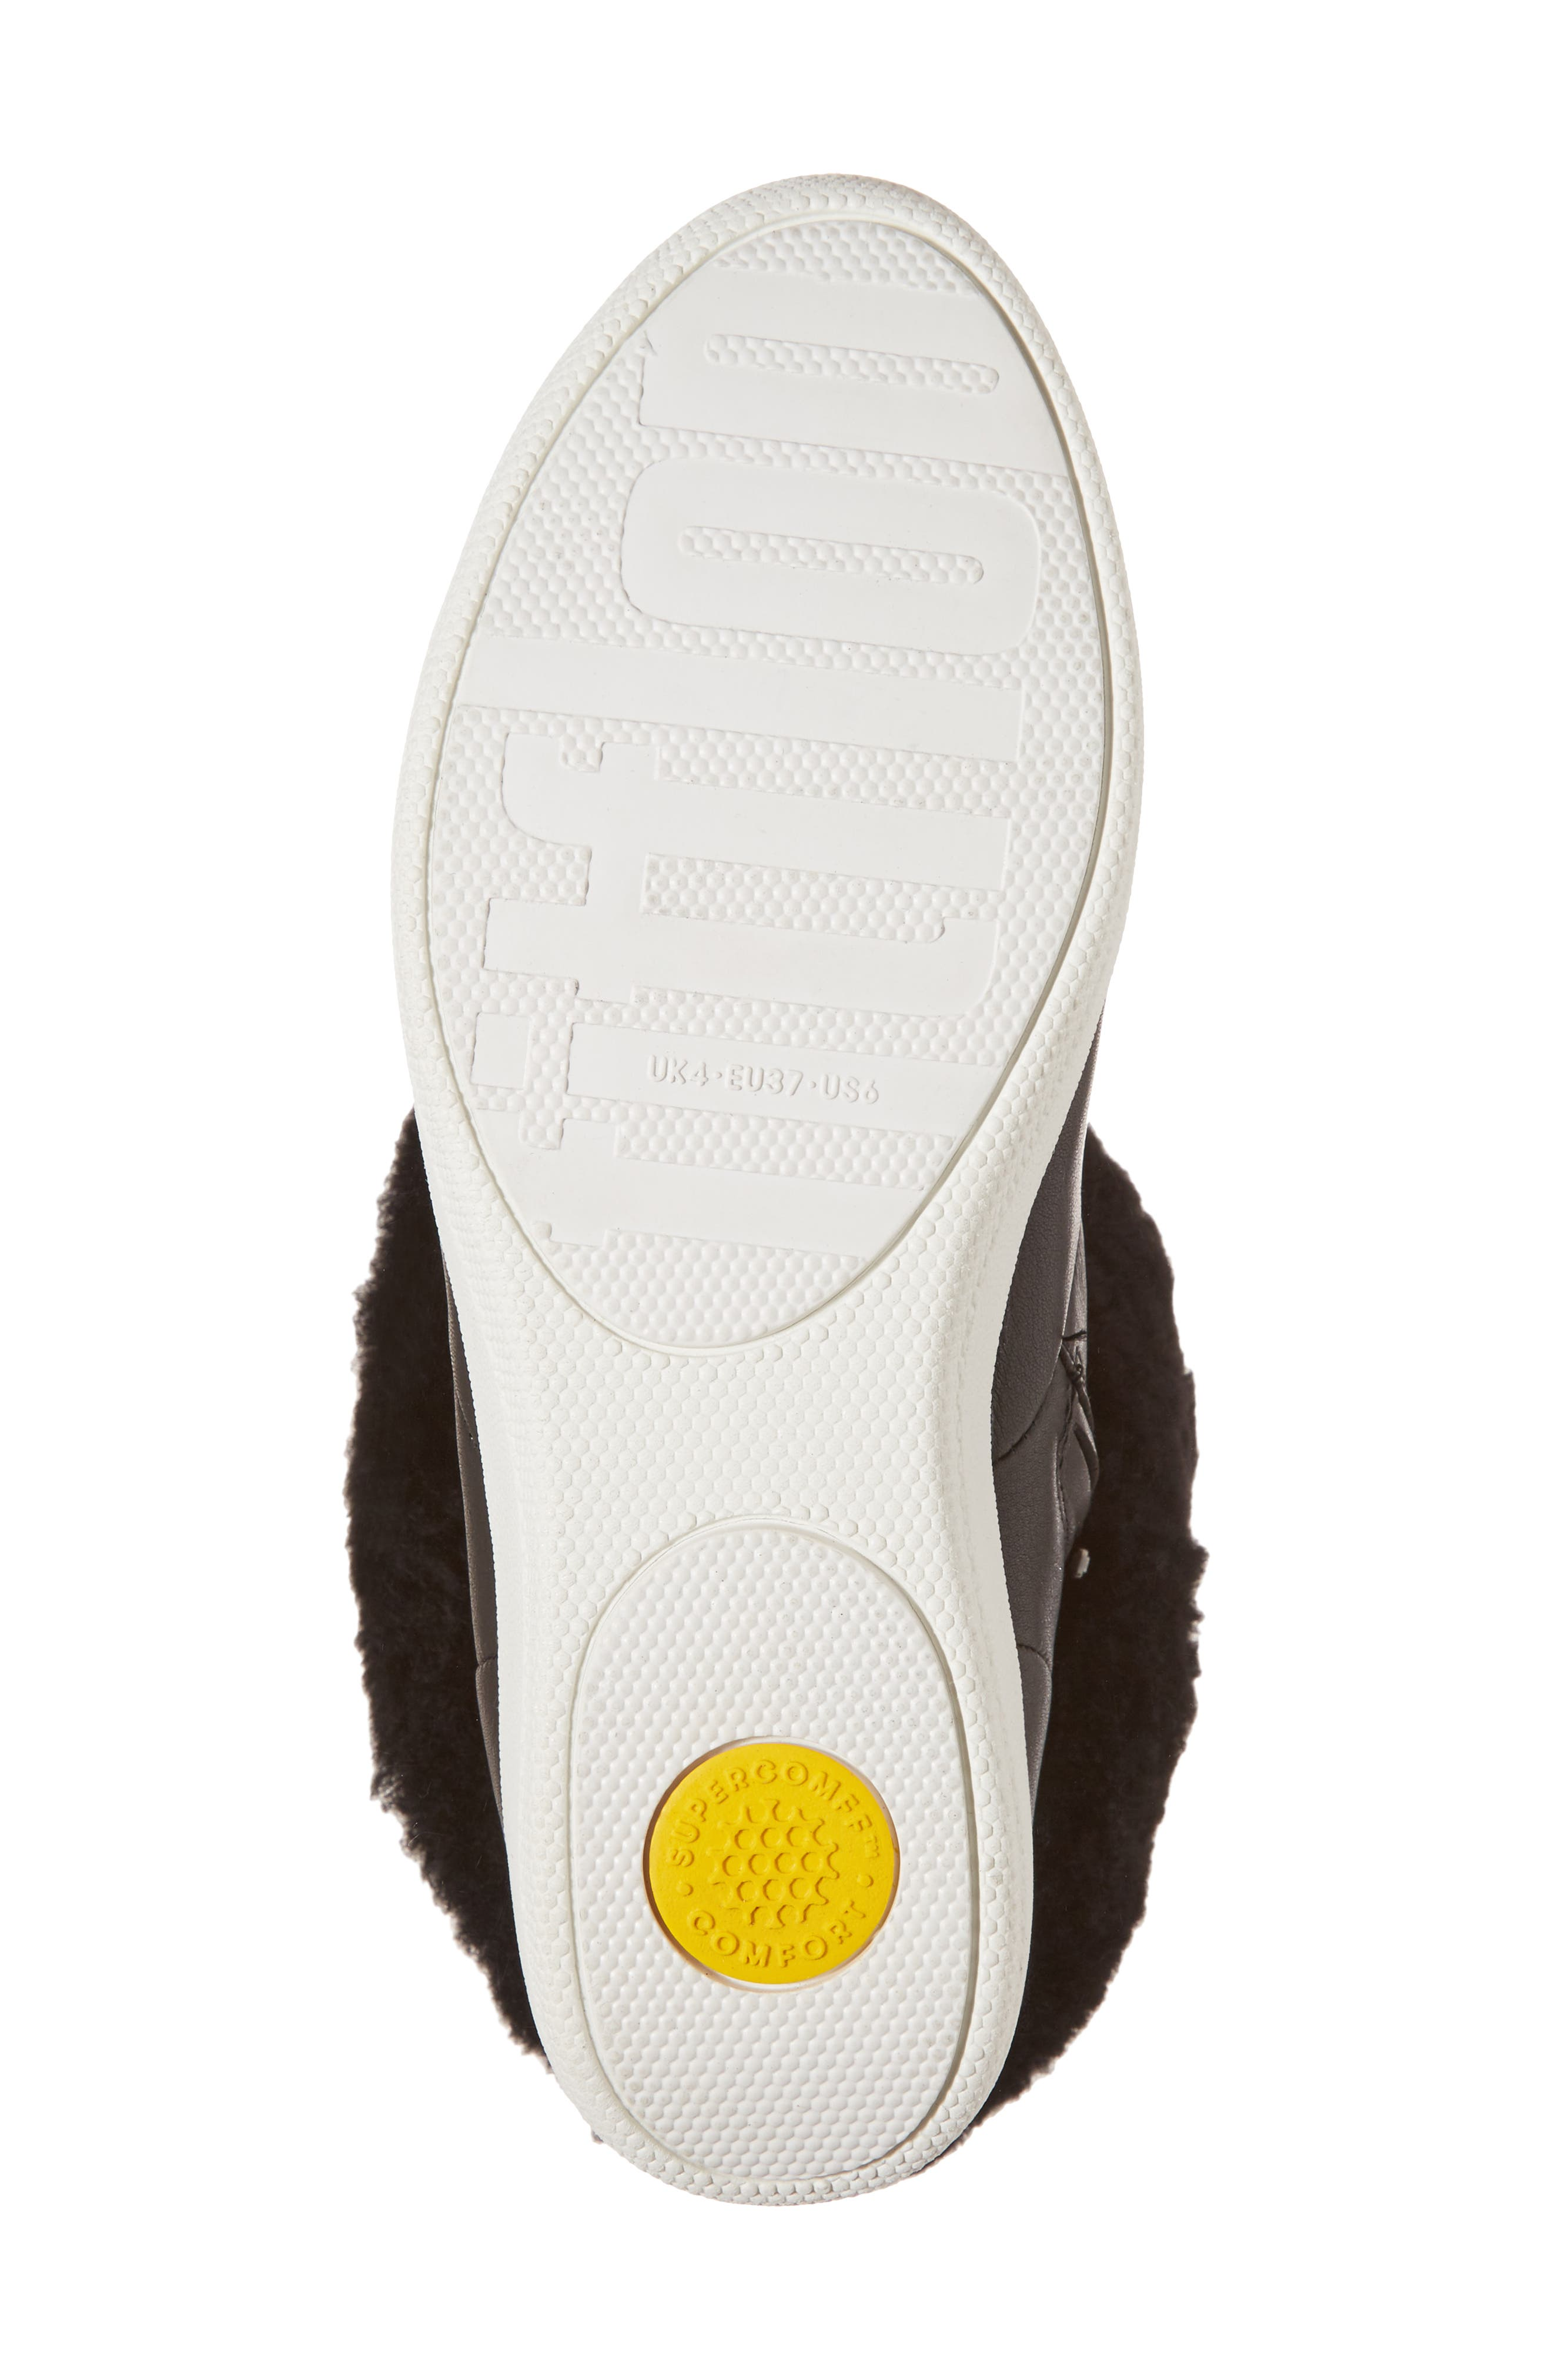 Skatebootie<sup>™</sup> with Genuine Shearling Cuff,                             Alternate thumbnail 11, color,